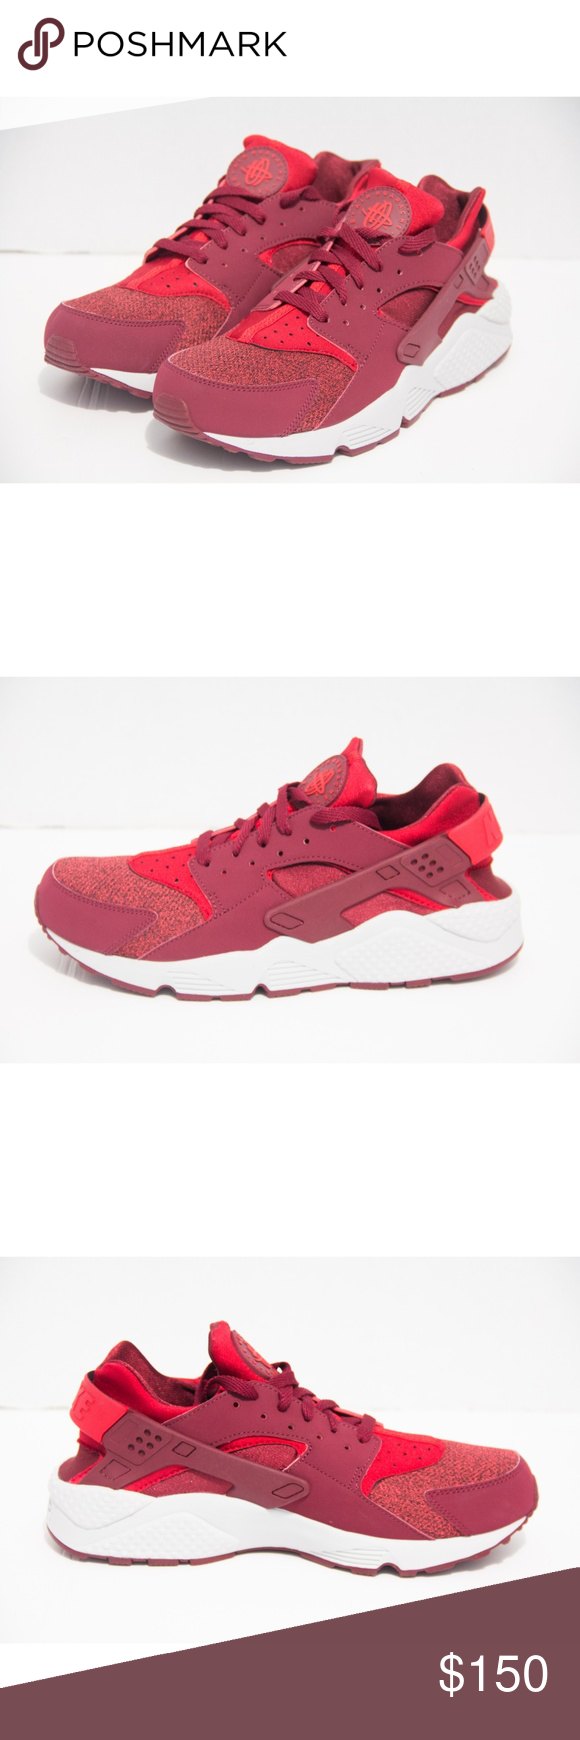 new concept 3a02c 116af Nike Air Huarache Mens Size 10 Team Red 318429-605 Brand new without box  Color